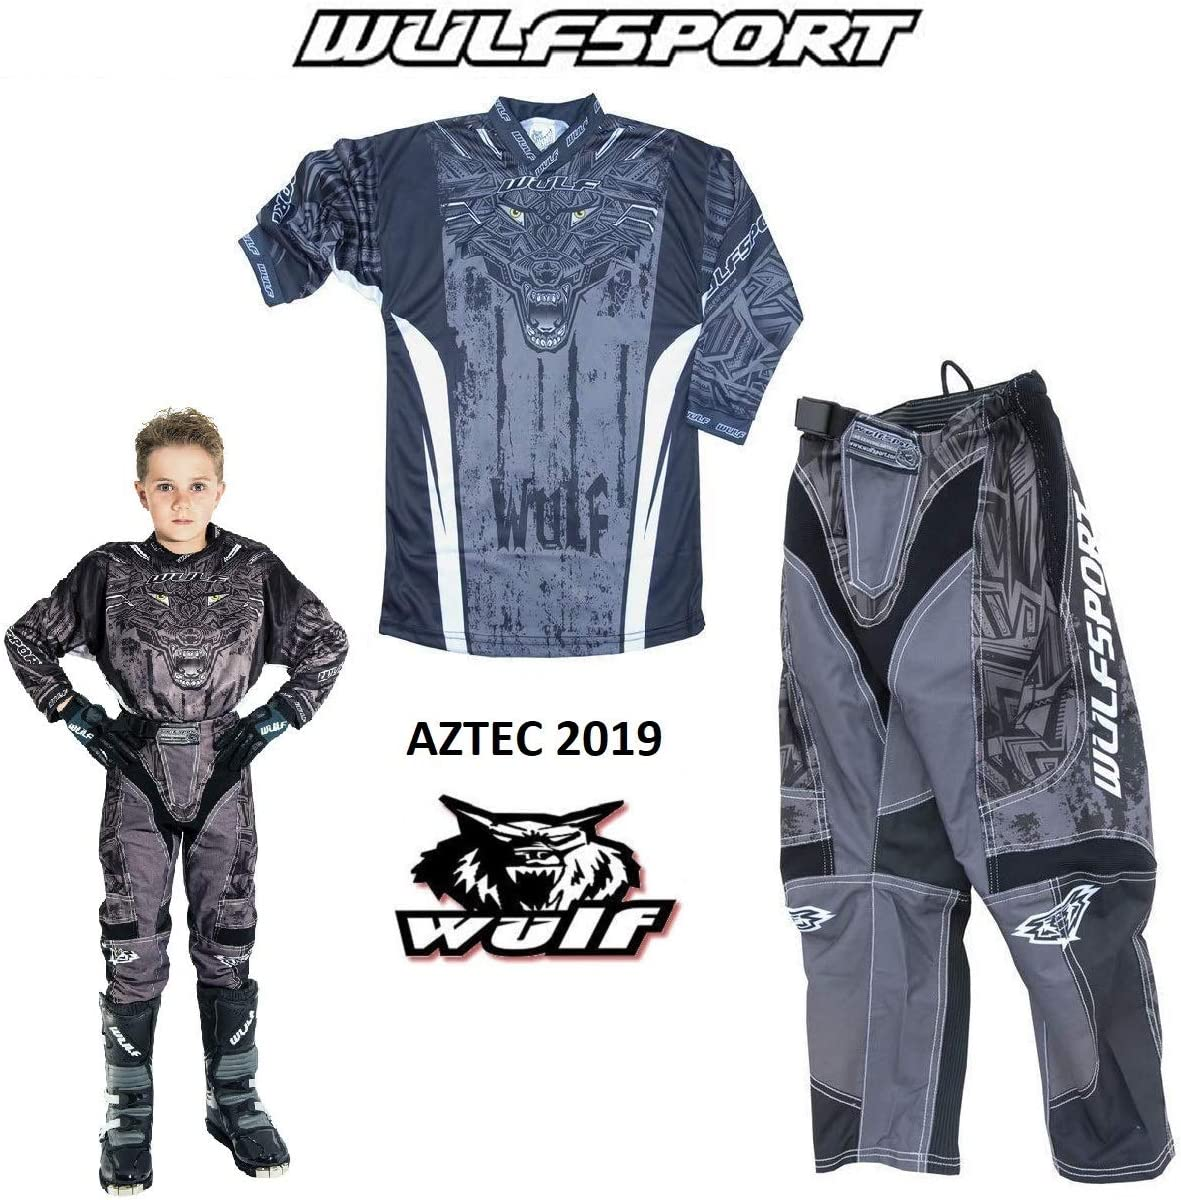 11-13 Years BLACK : SHIRT Kids Race Suit WULFSPORT FORTE 2020 Motorcycle Motorbike Quad Pit Bike ATV BMX Childrens Junior Motocross Black Jersey and Trouser , Pant : 20 waist